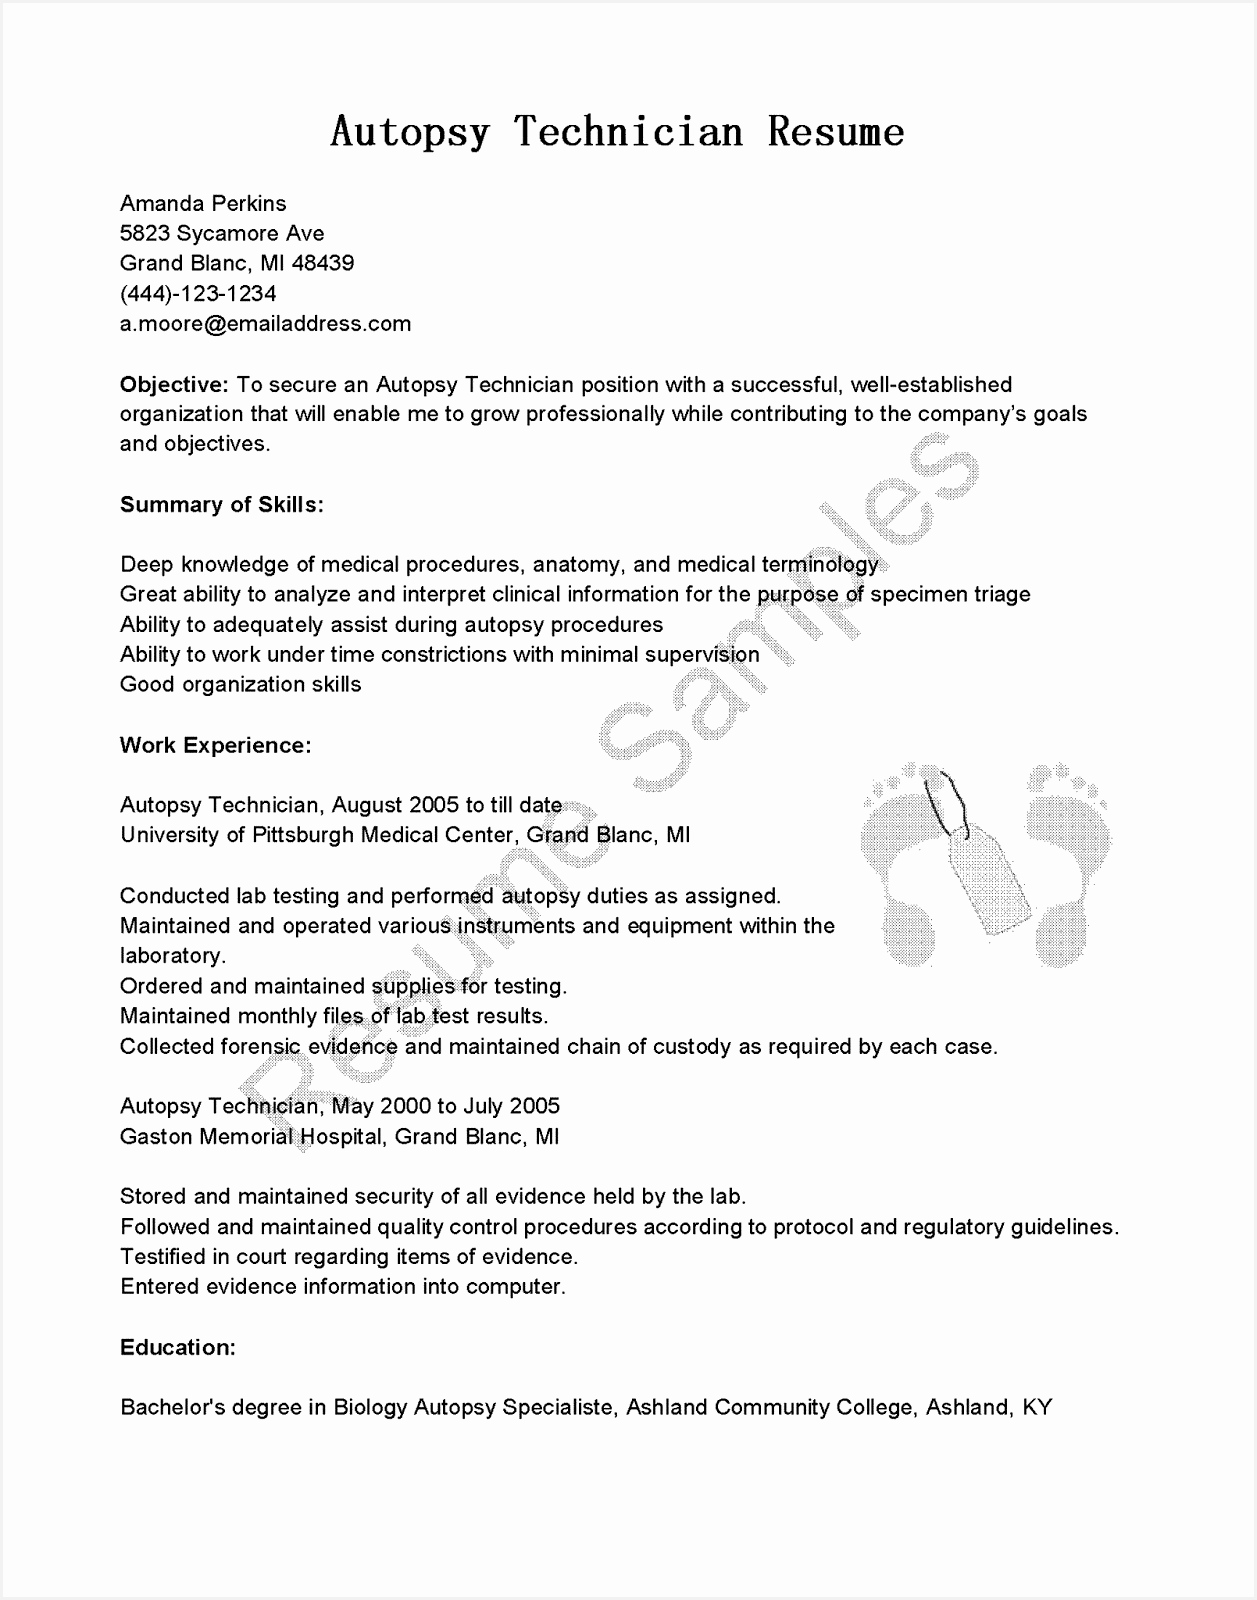 grapher Resume Template Inspirational Cover Letter Template Word Fresh Letter Template Word 2003 Copy Od16001257